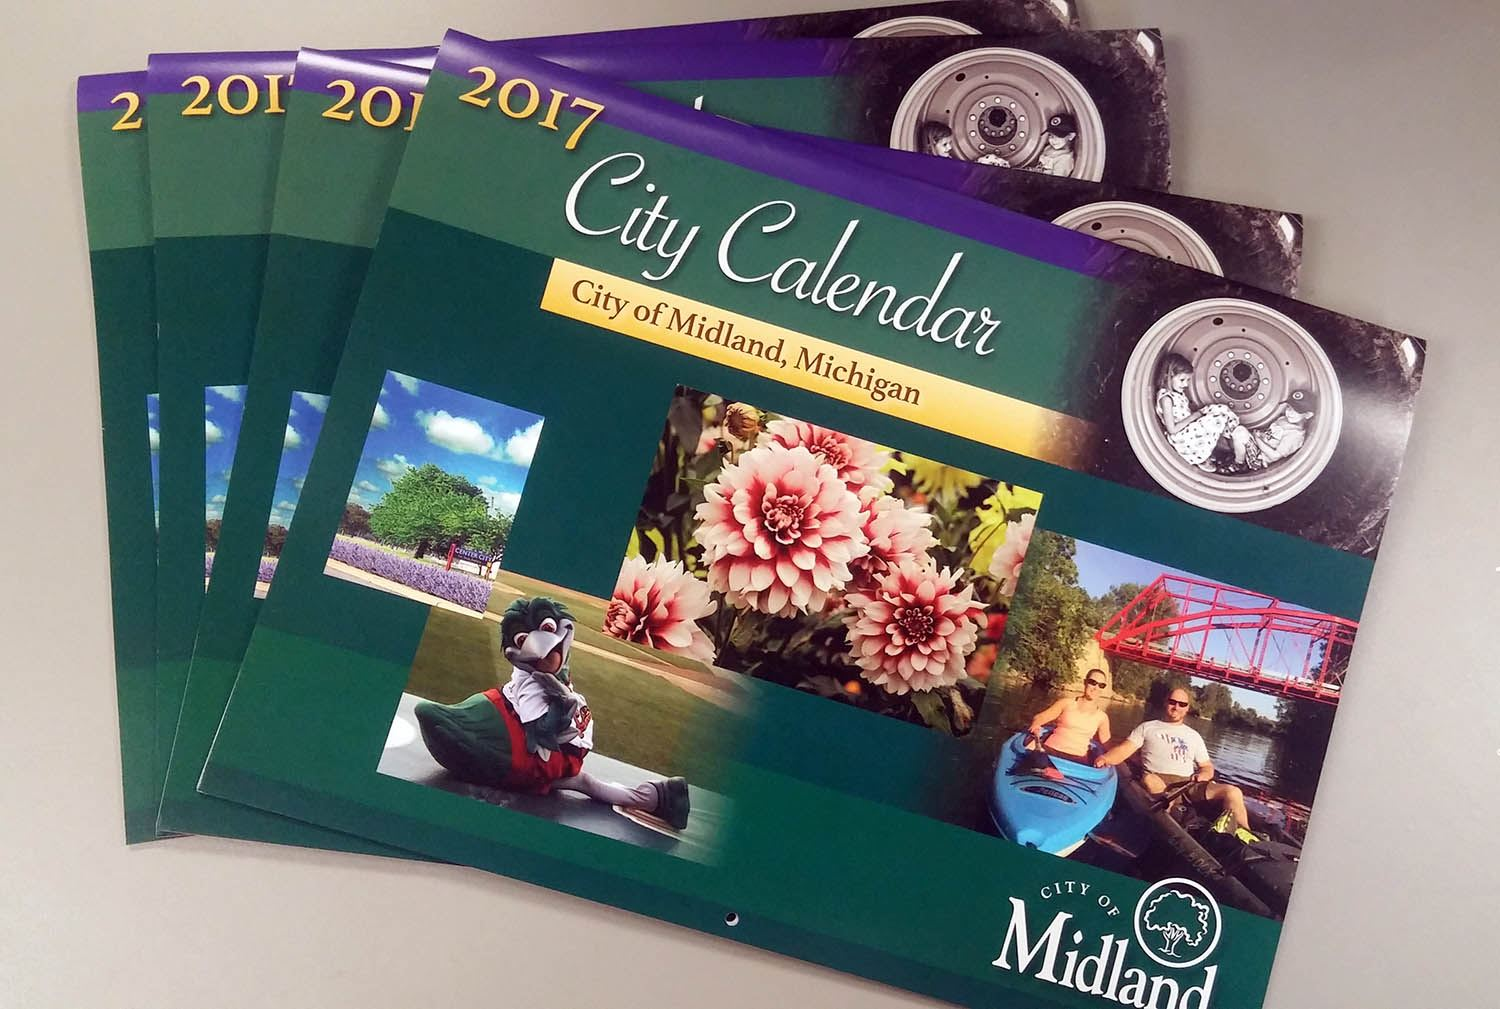 2017 City of Midland calendars in a stack